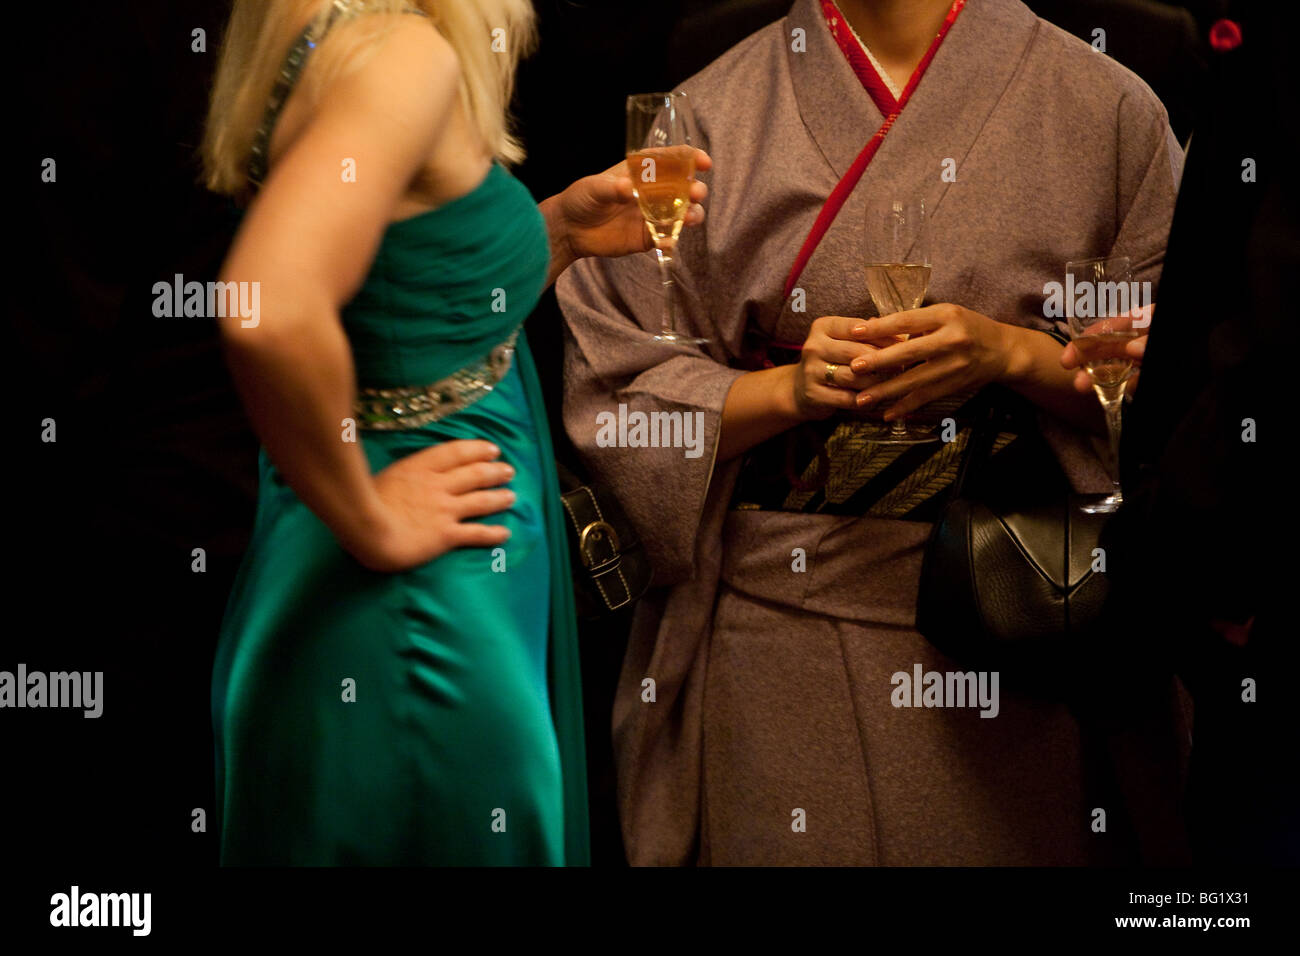 Japanese woman in kimono drinking champagne with Woman in Western style dress. - Stock Image